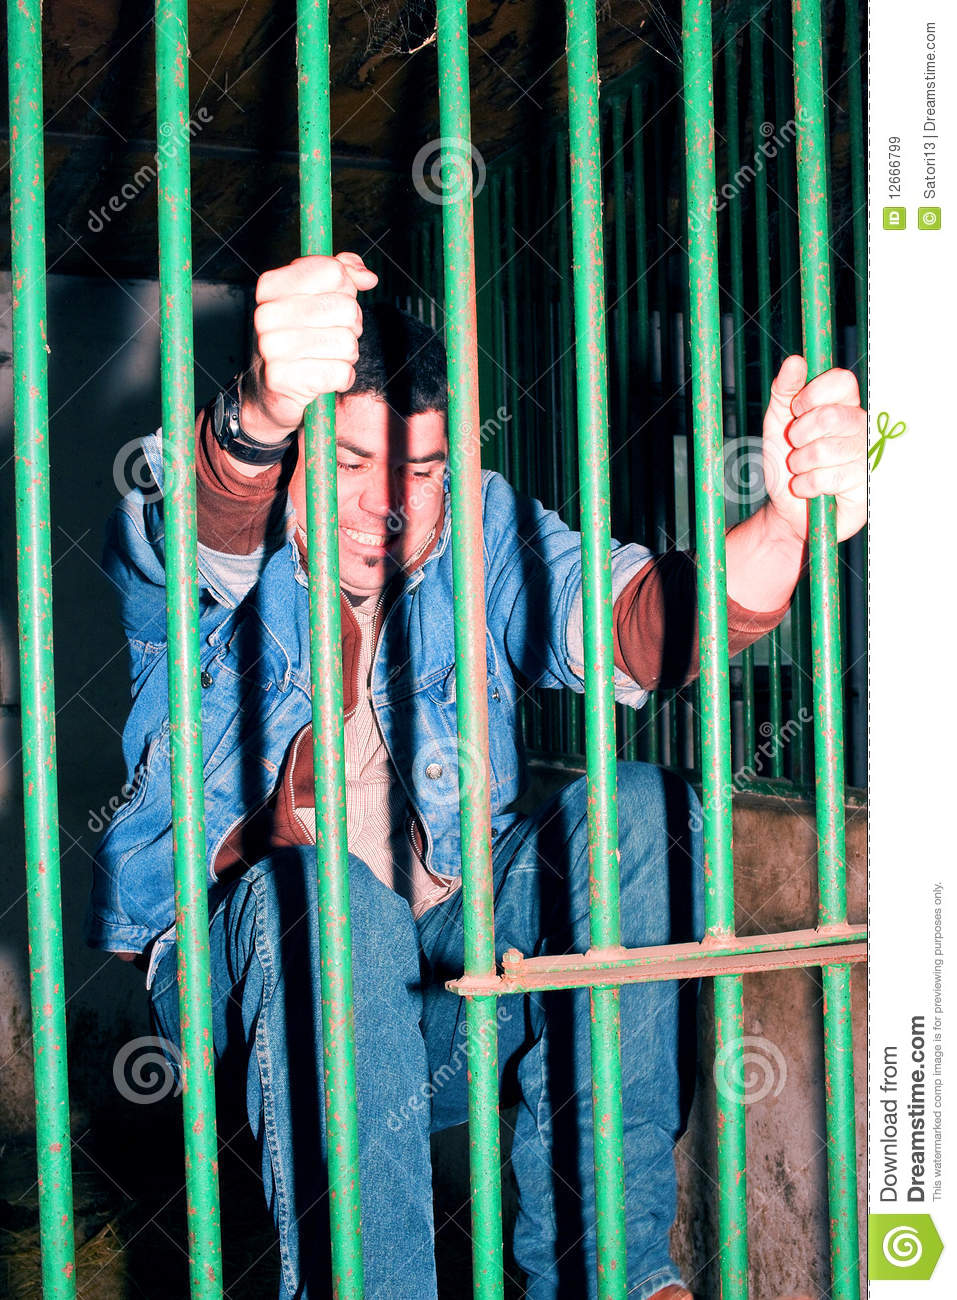 dating a man behind bars Women: beware dating men behind bars  is it the excitement of dating a dangerous man, but one who cannot do harm while on the inside perhaps it is the knowledge that he relies on her totally .